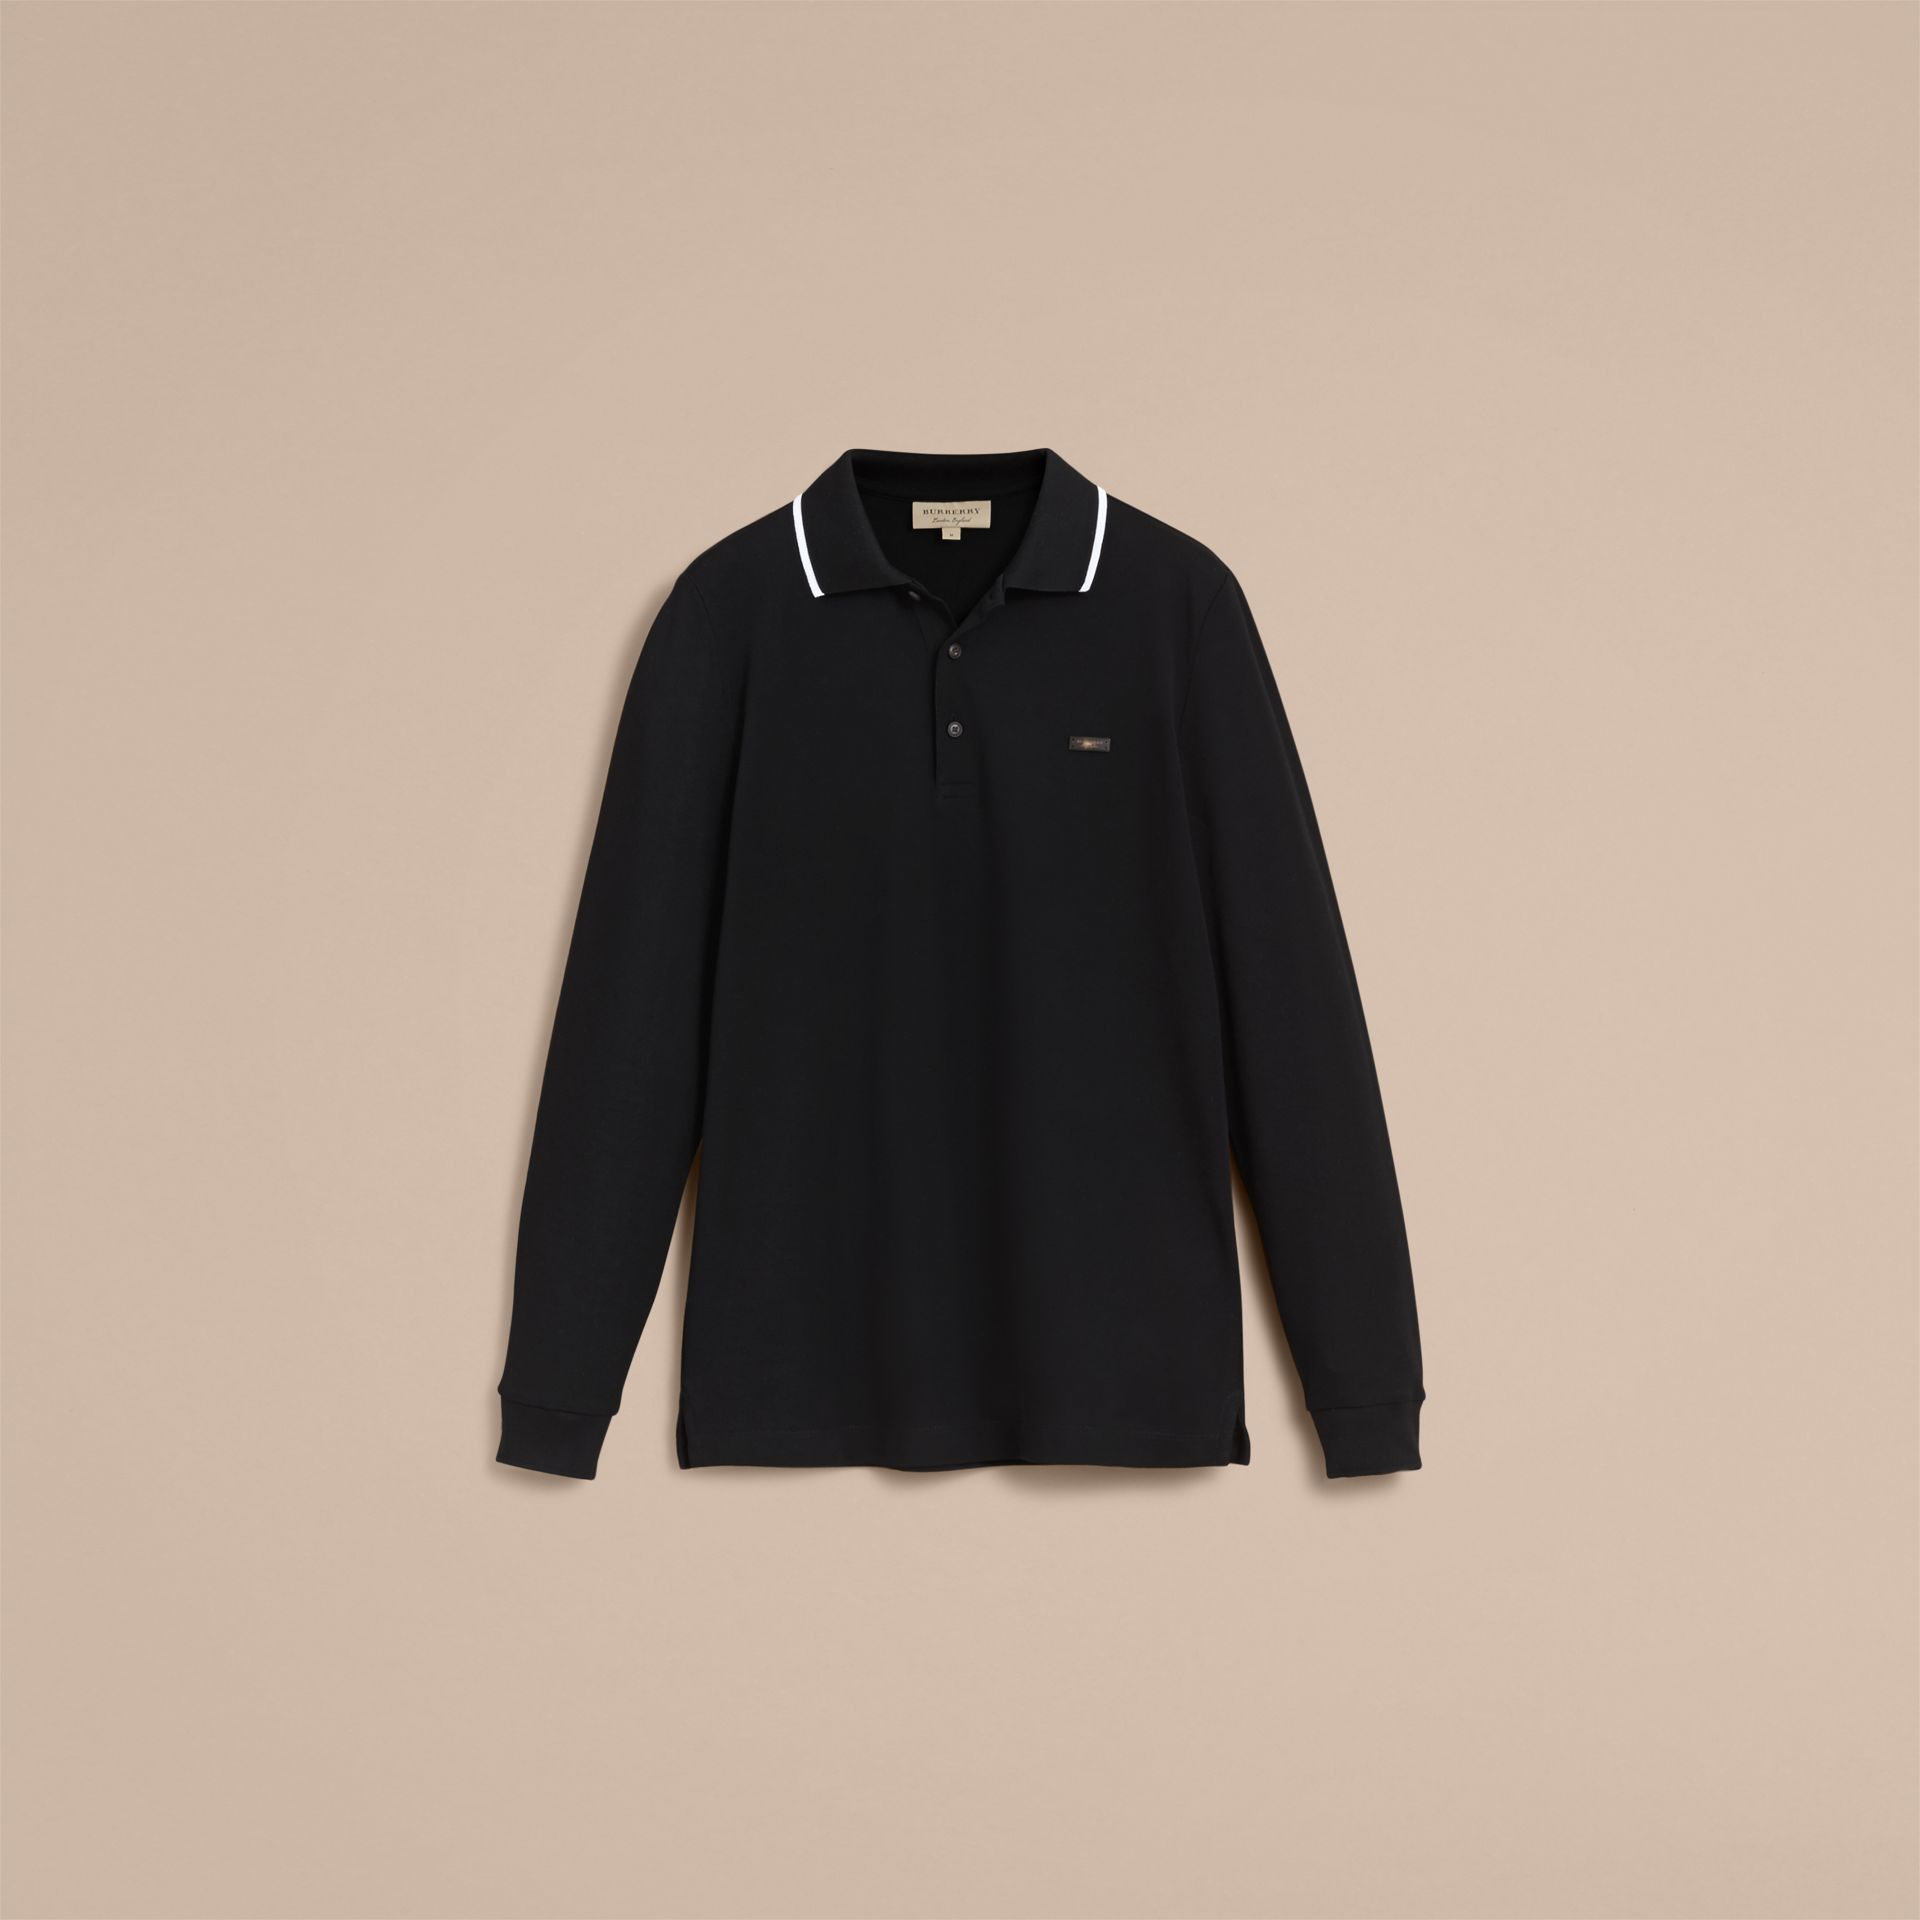 Long-sleeved Tipped Cotton Piqué Polo Shirt Black - gallery image 4